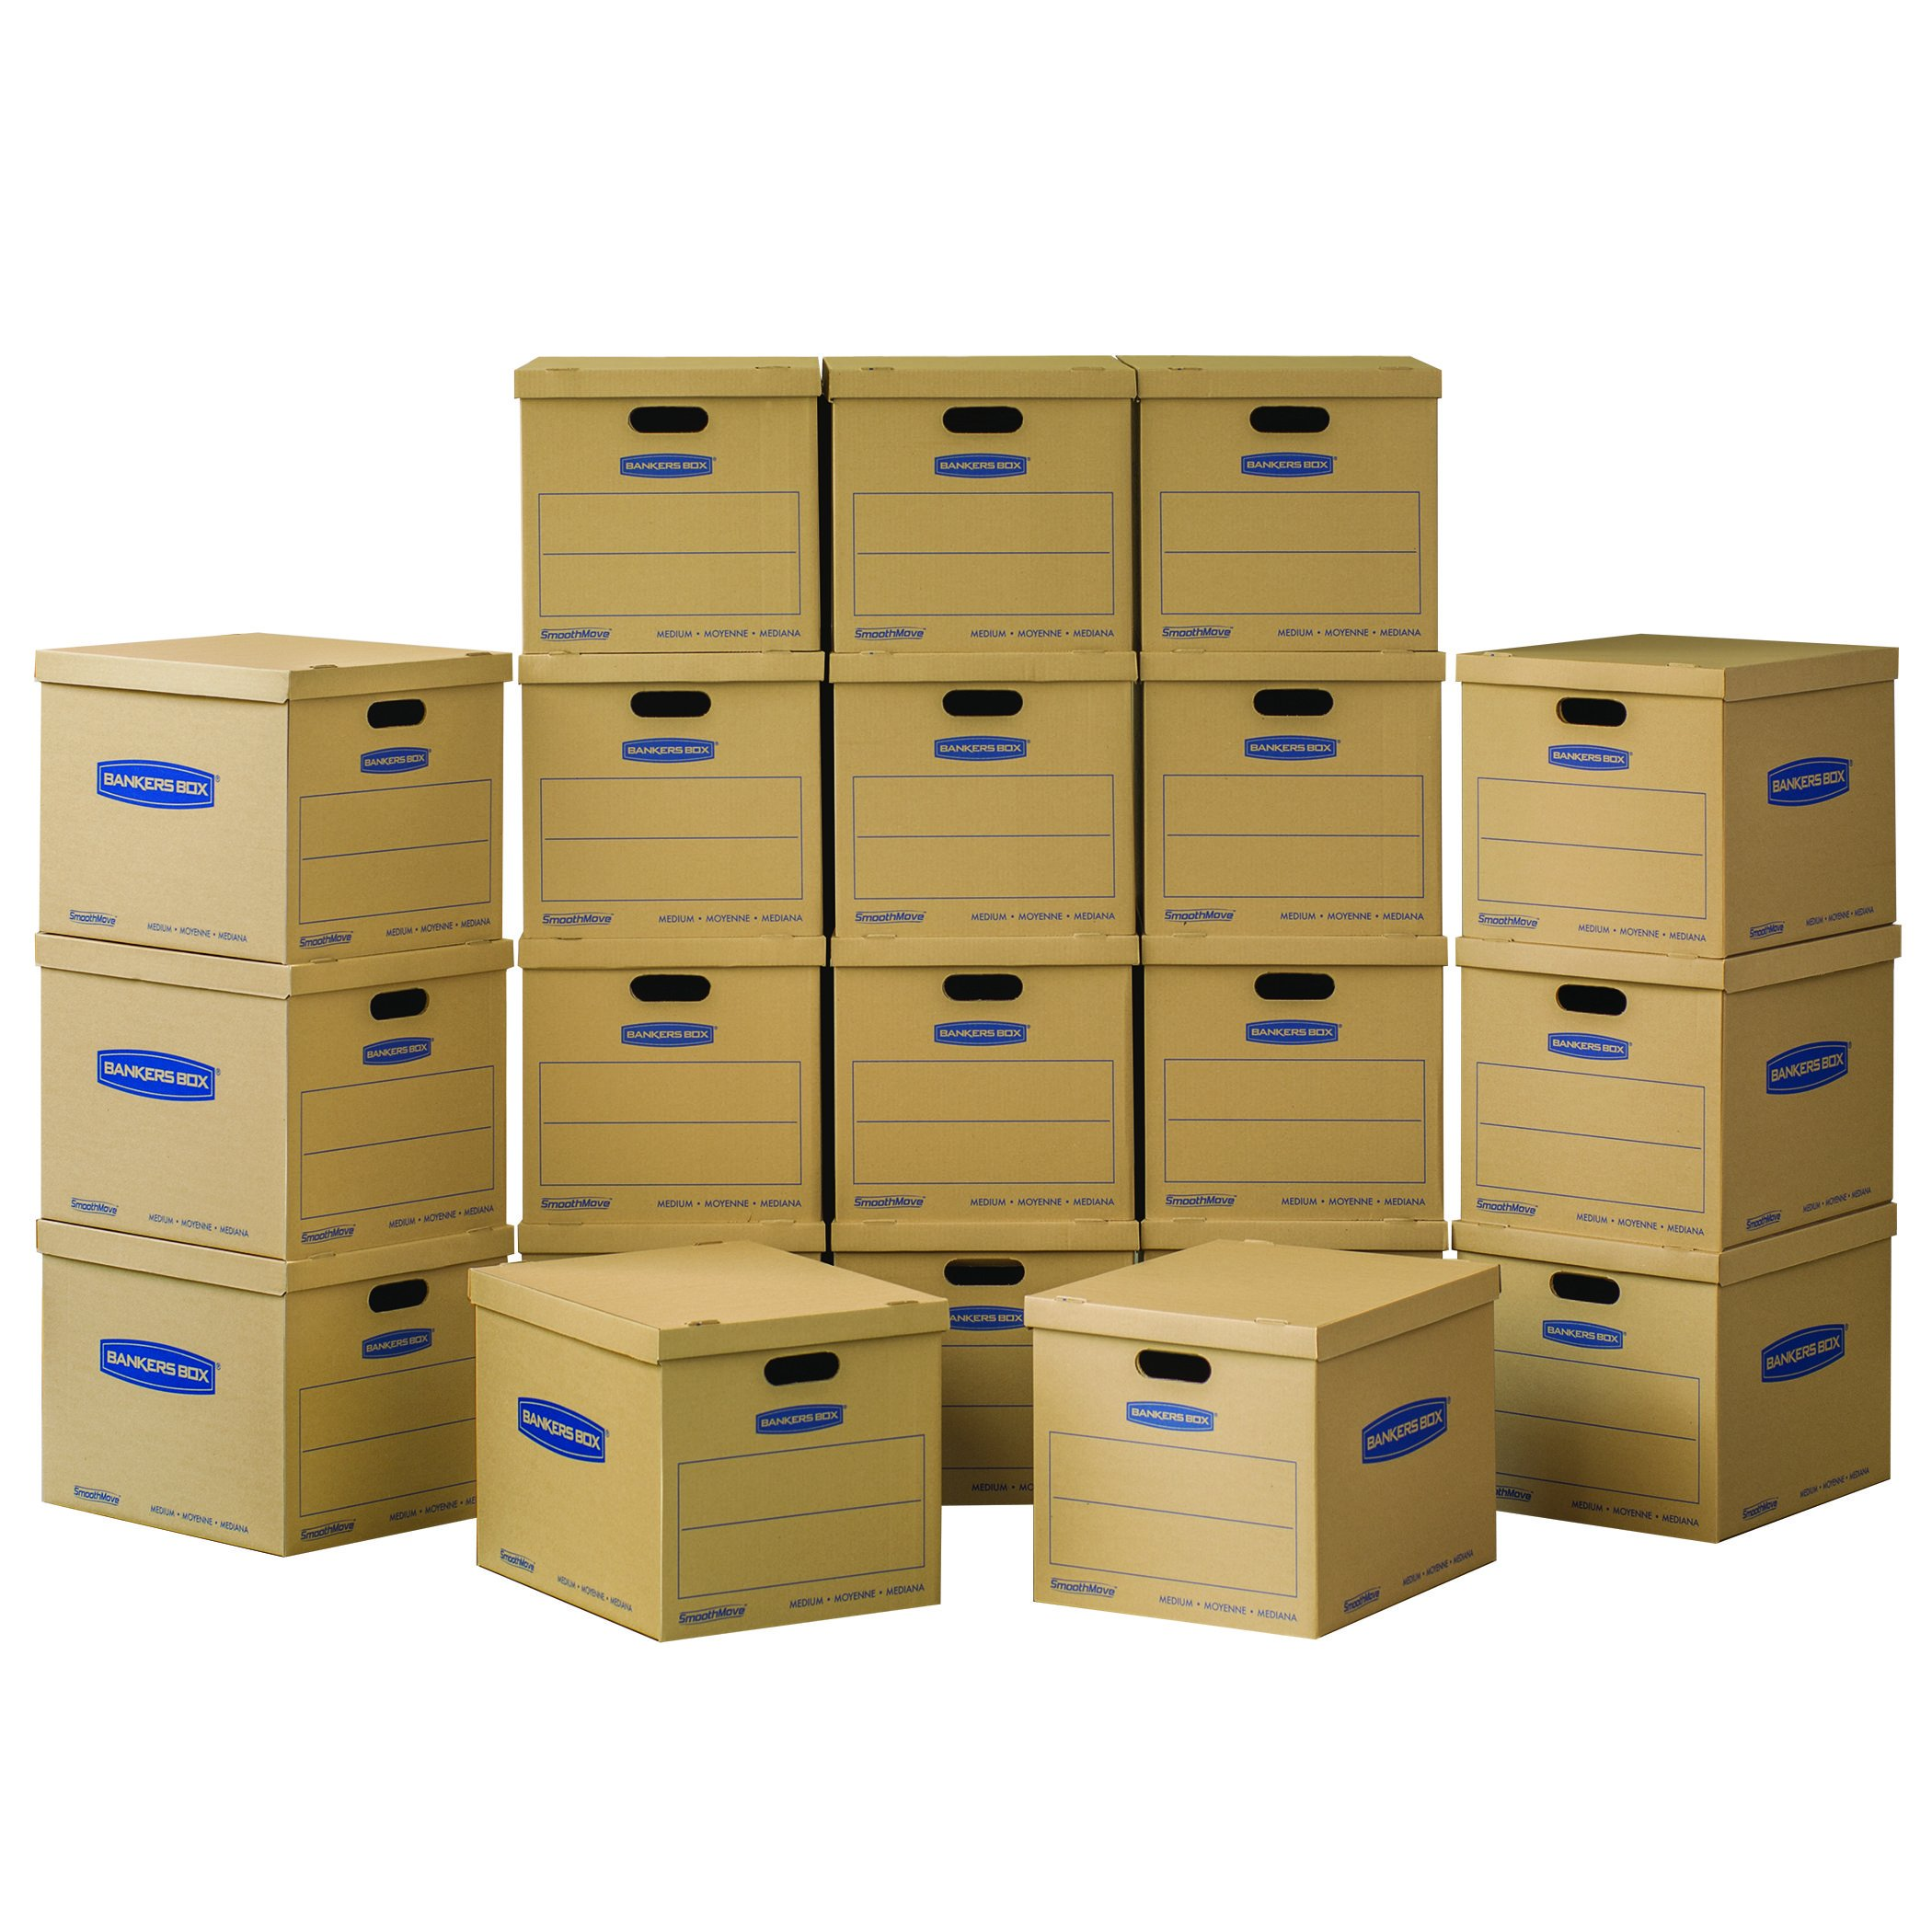 Bankers Box SmoothMove Classic Moving Boxes, Tape-Free Assembly, Easy Carry Handles, Medium, 18 x 15 x 14 inches, 10 Pack (7717205)